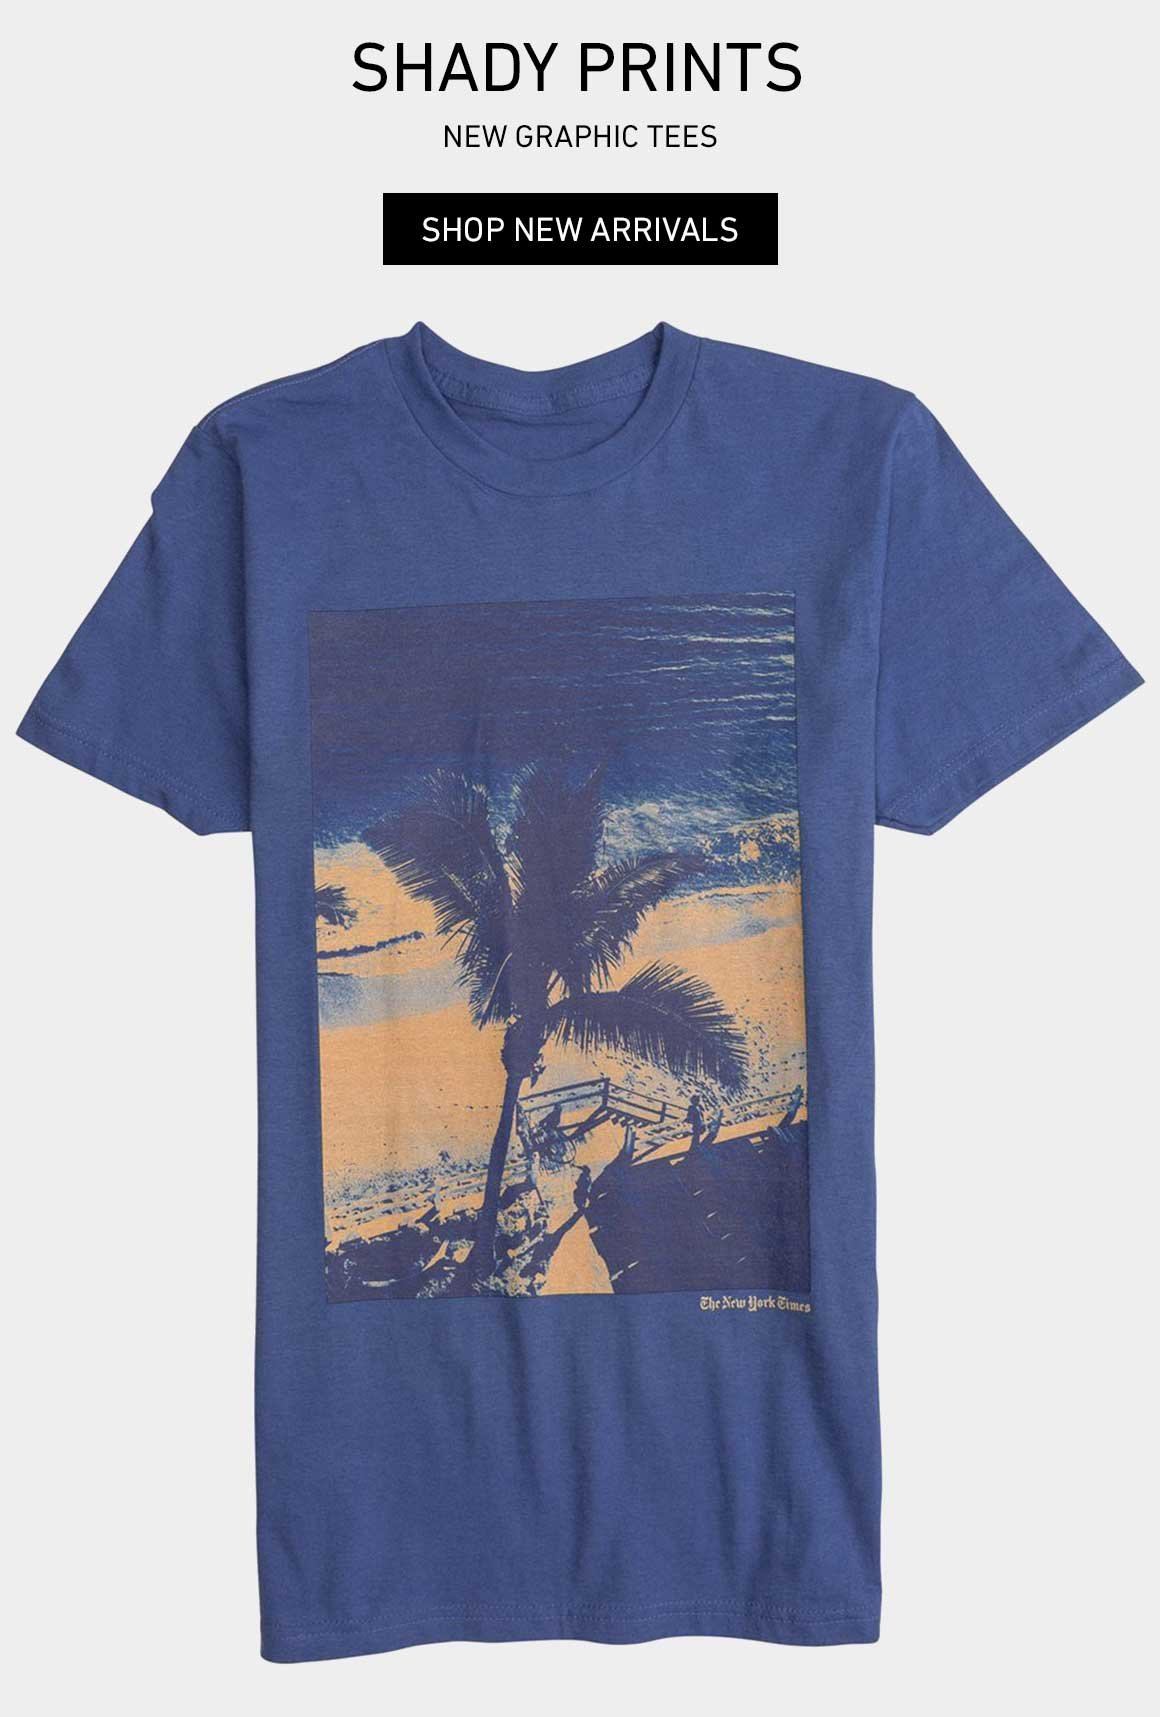 Shady Prints: New Graphic Tees